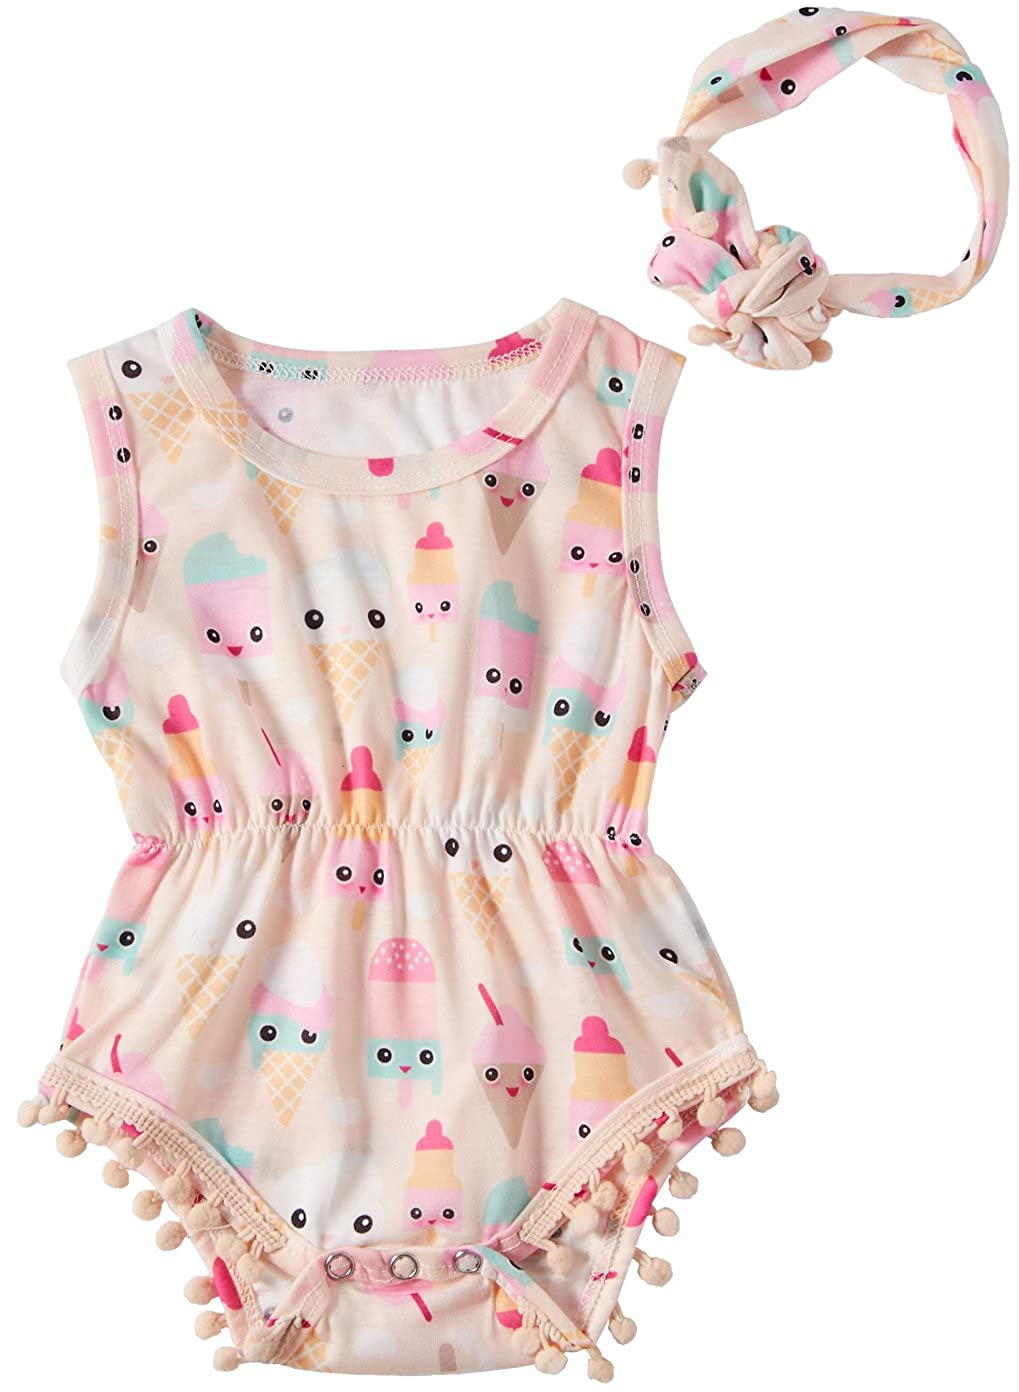 Leapparel Newborn Toddler Baby Girl Floral Sleeveless Bodysuit Romper Jumpsuit Outfit Set Casual Clothes Headband xzq18051401